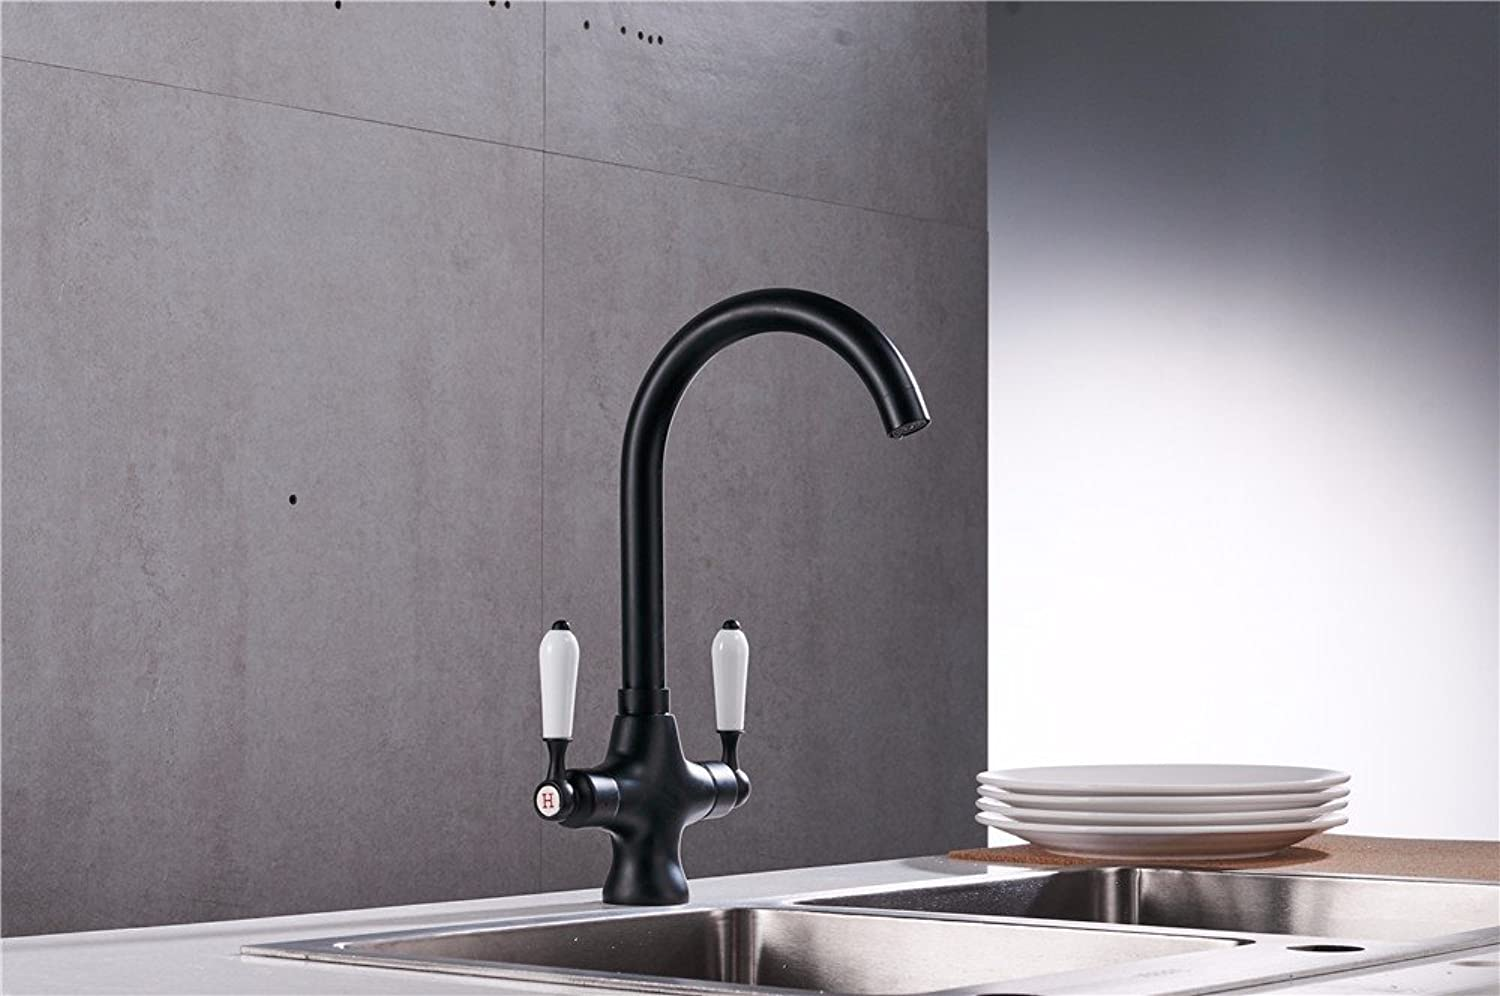 Gyps Faucet Basin Mixer Tap Waterfall Faucet Bathroom The Nordic modern minimalist retro black ceramic stainless steel waterfall solid brass bathroom sink faucet kitchen toilet hotel restaurant